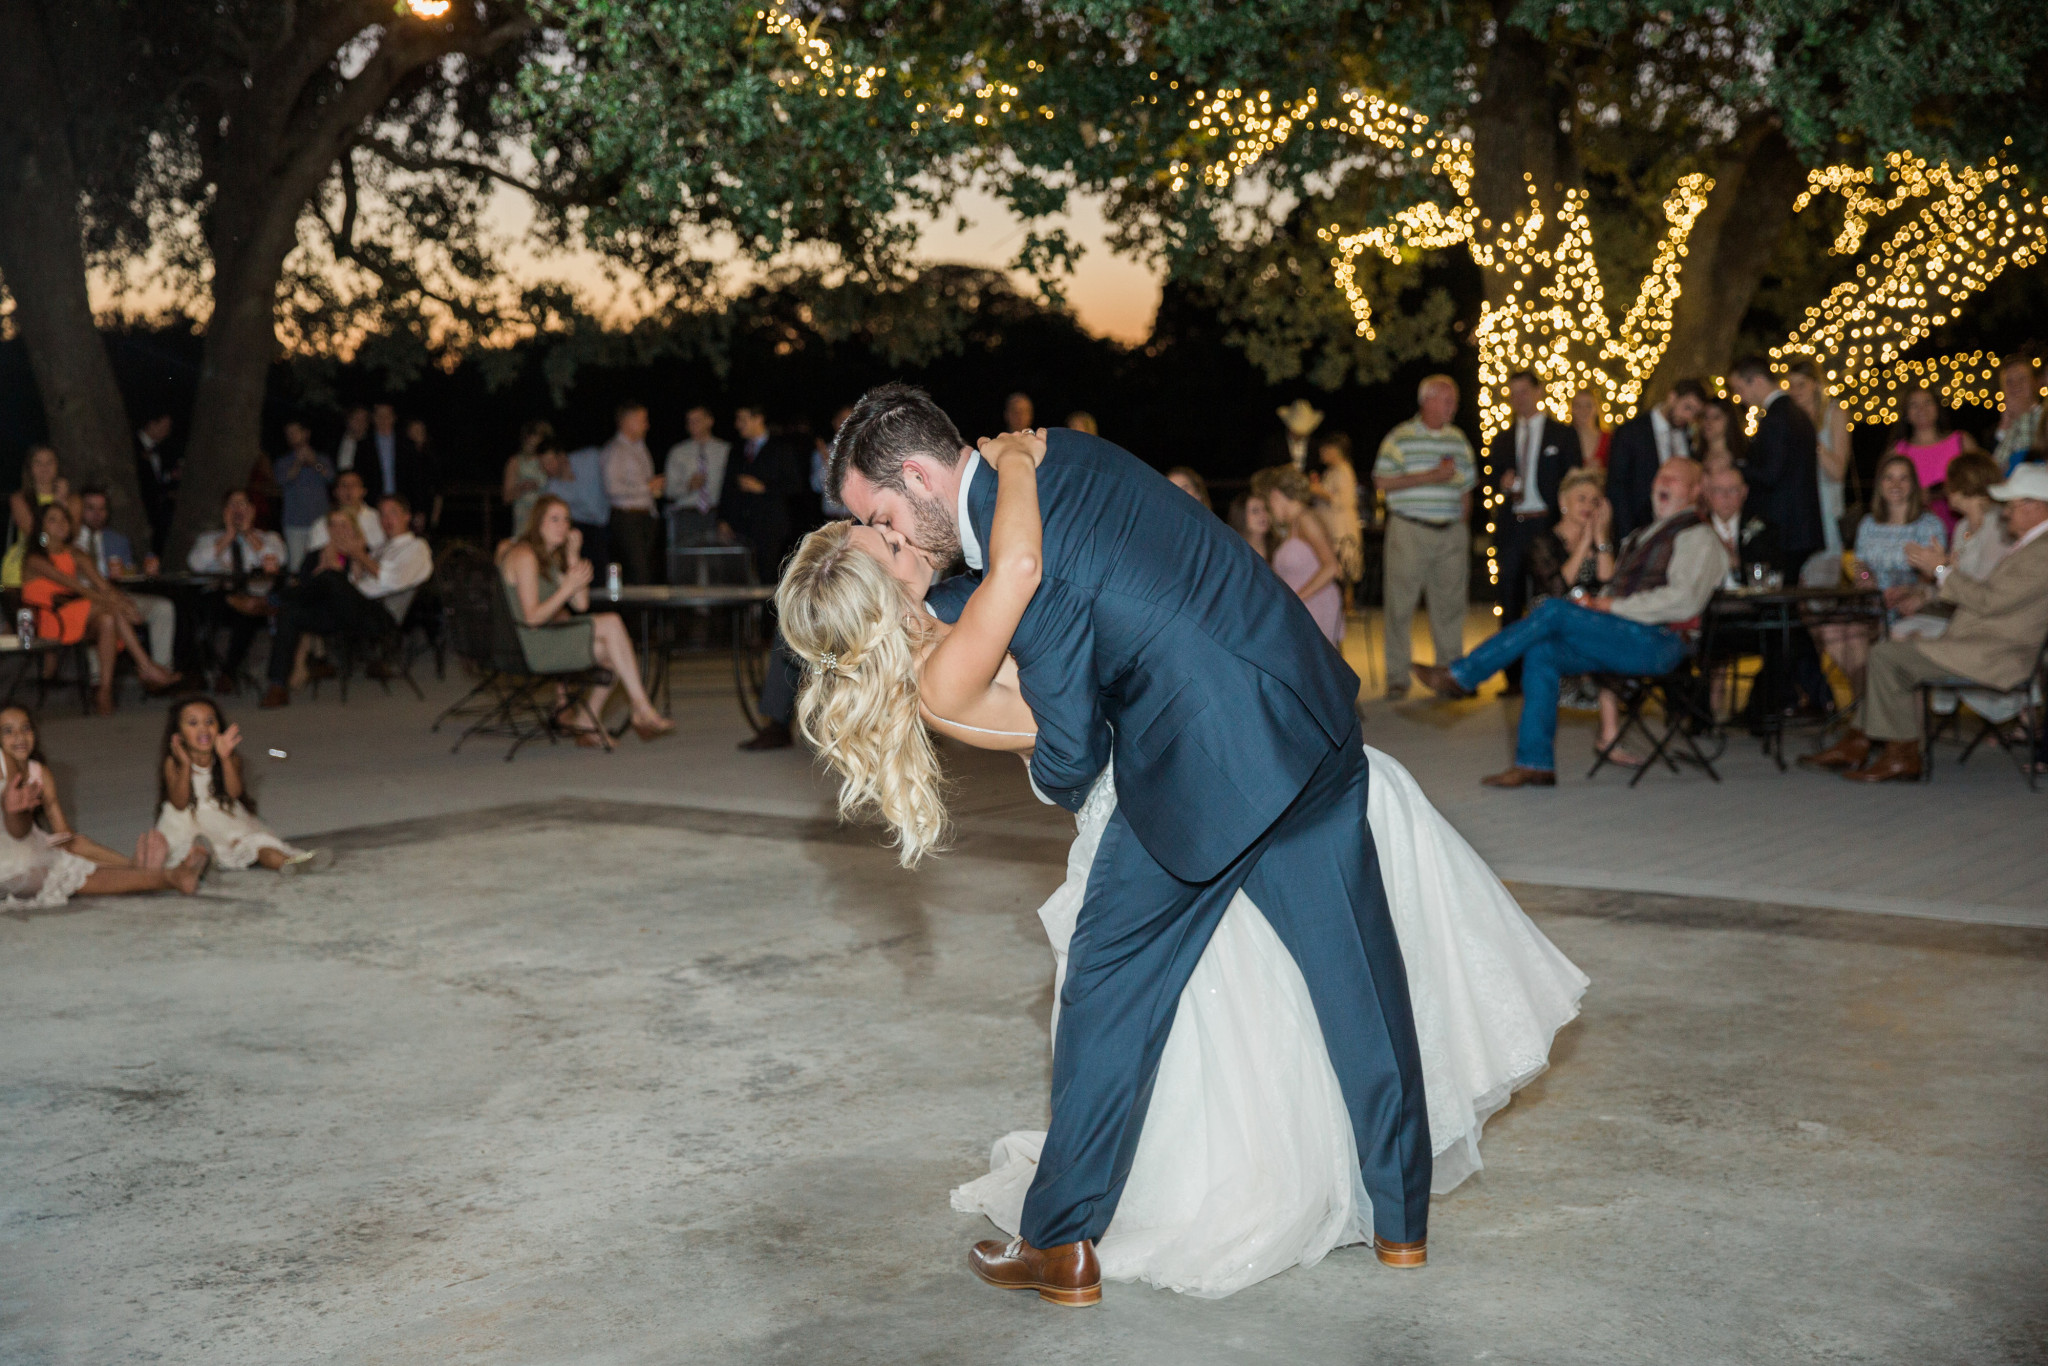 Make A Date With: Central Texas Wedding Venues At Reisefeber.org